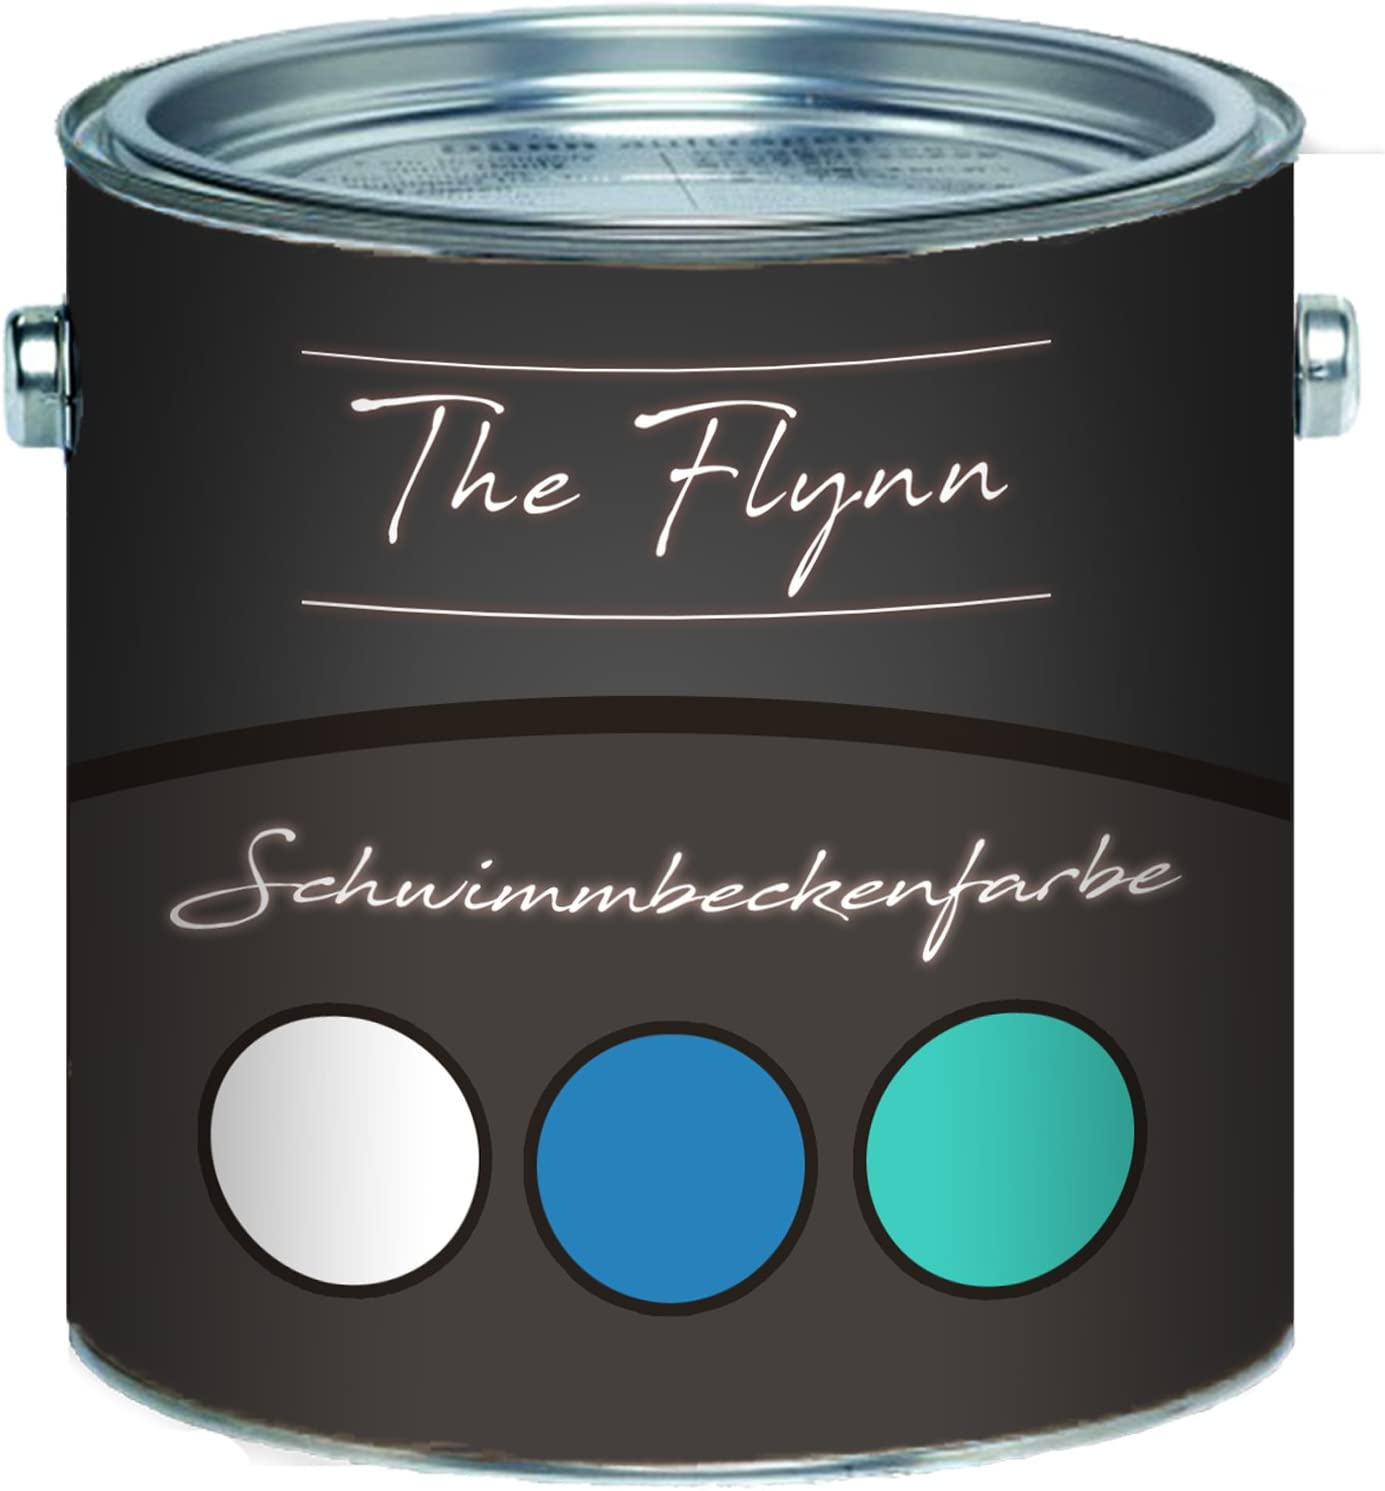 The Flynn Producto auserlesene Piscina Color en azul blanco verde mar verde gris luz gris antracita gris Piscina revestimiento de hormigón Color Estanque Color, Gris